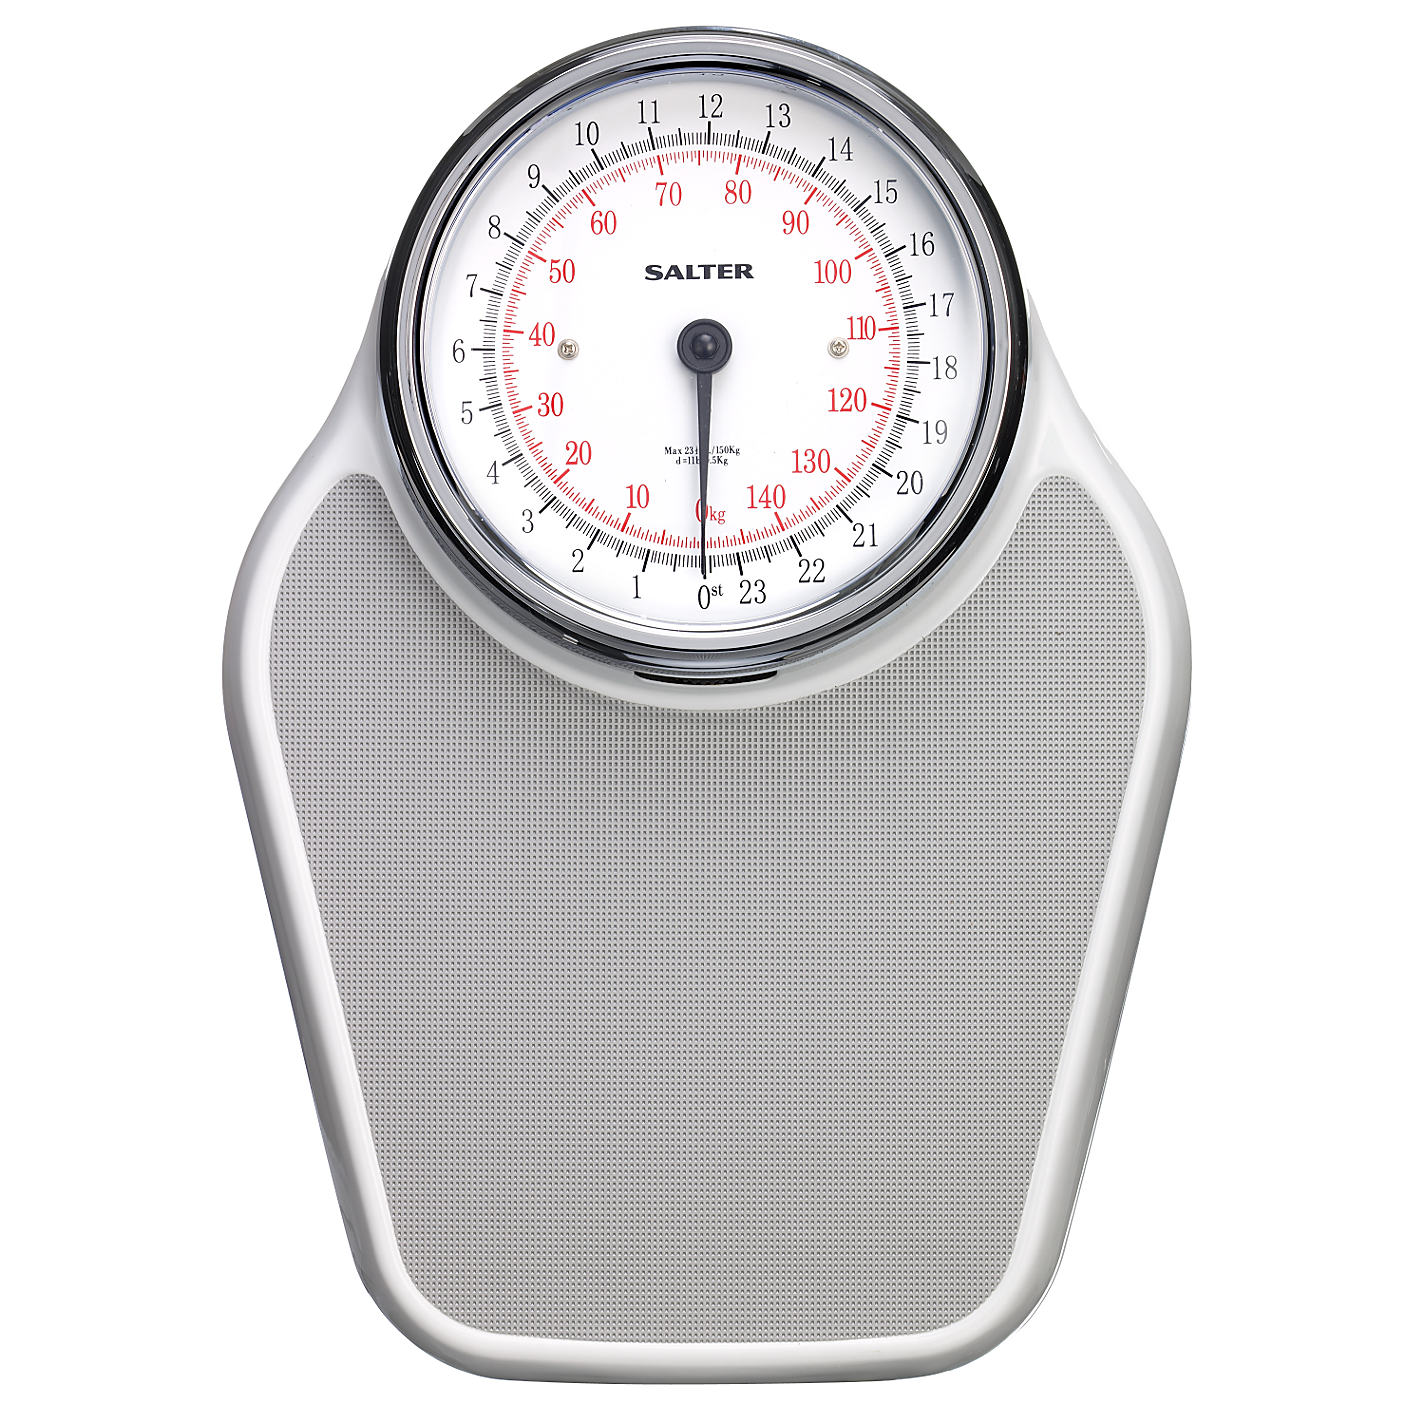 Weighing Scales Bathroom: Personal Training Blog: 2017